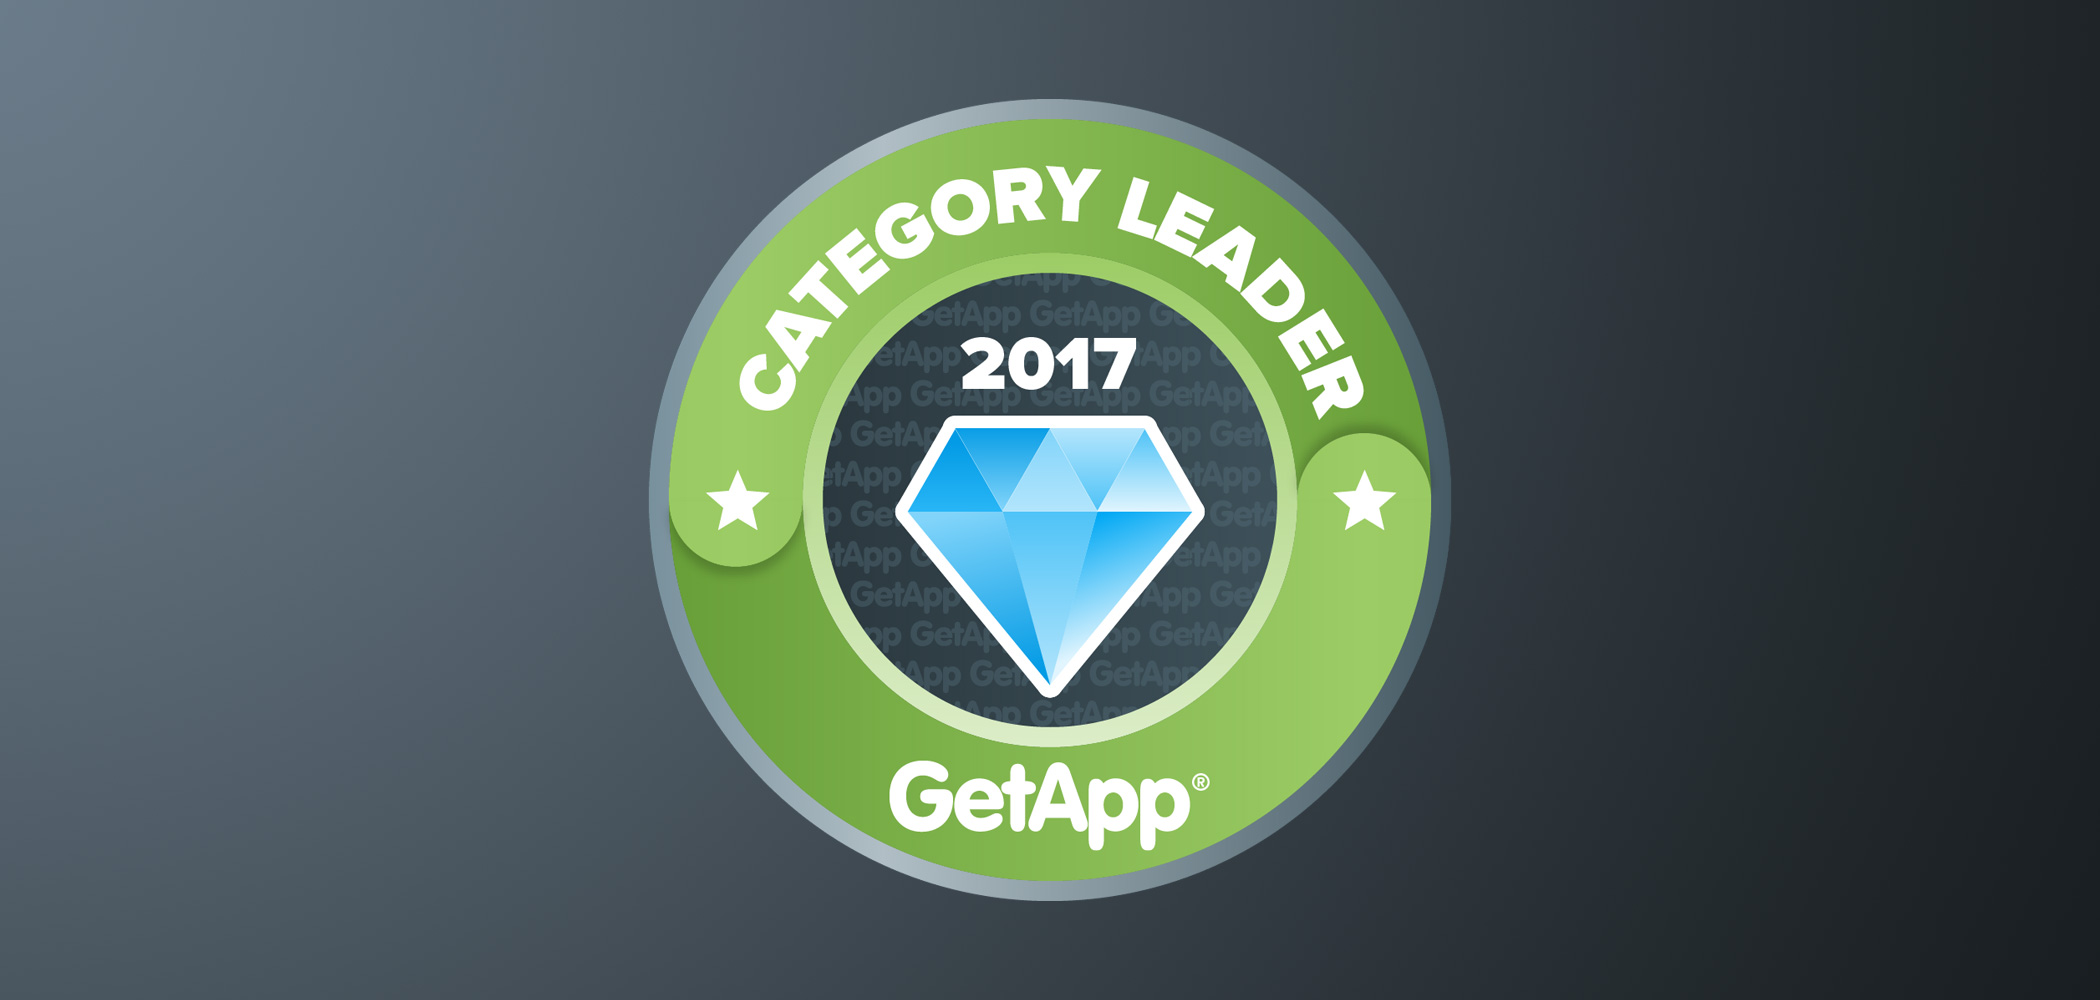 We're proud to announce that Setmore ranked #5 in GetApp's quarterly Category Leader rankings showcase for Reservations and Online Booking!